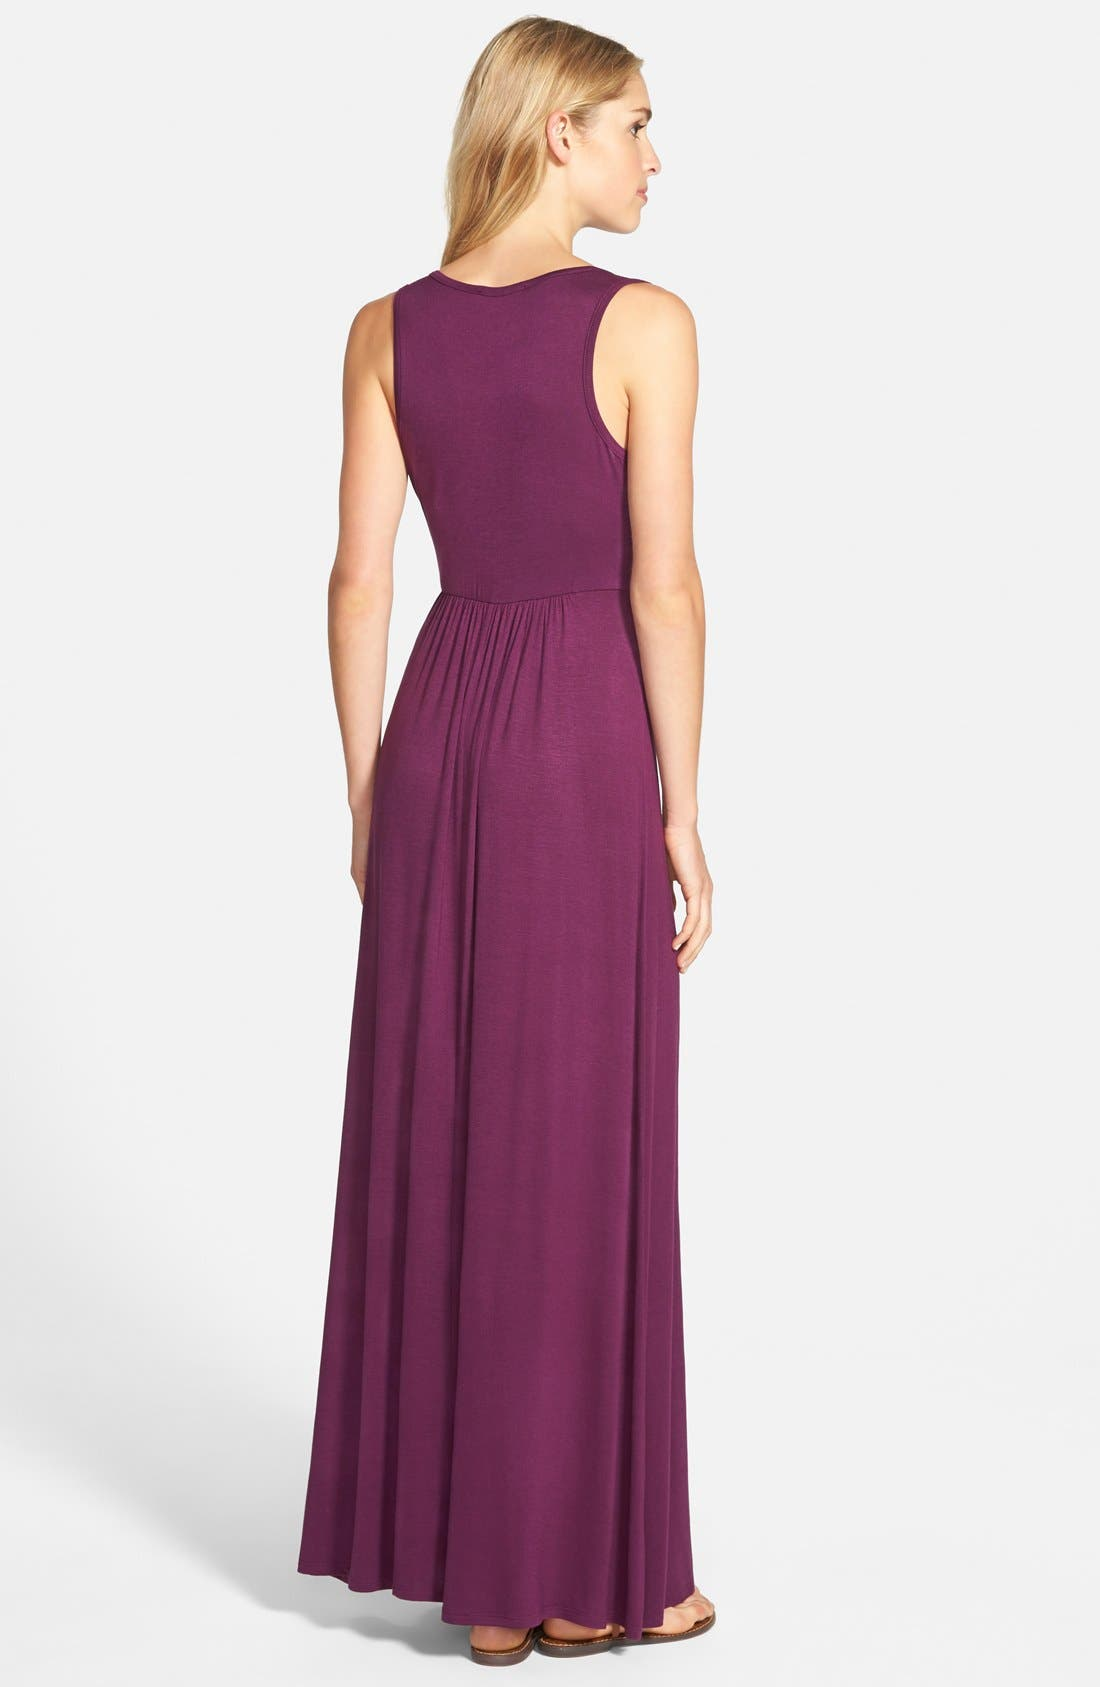 V-Neck Jersey Maxi Dress,                             Alternate thumbnail 7, color,                             PURPLE DARK